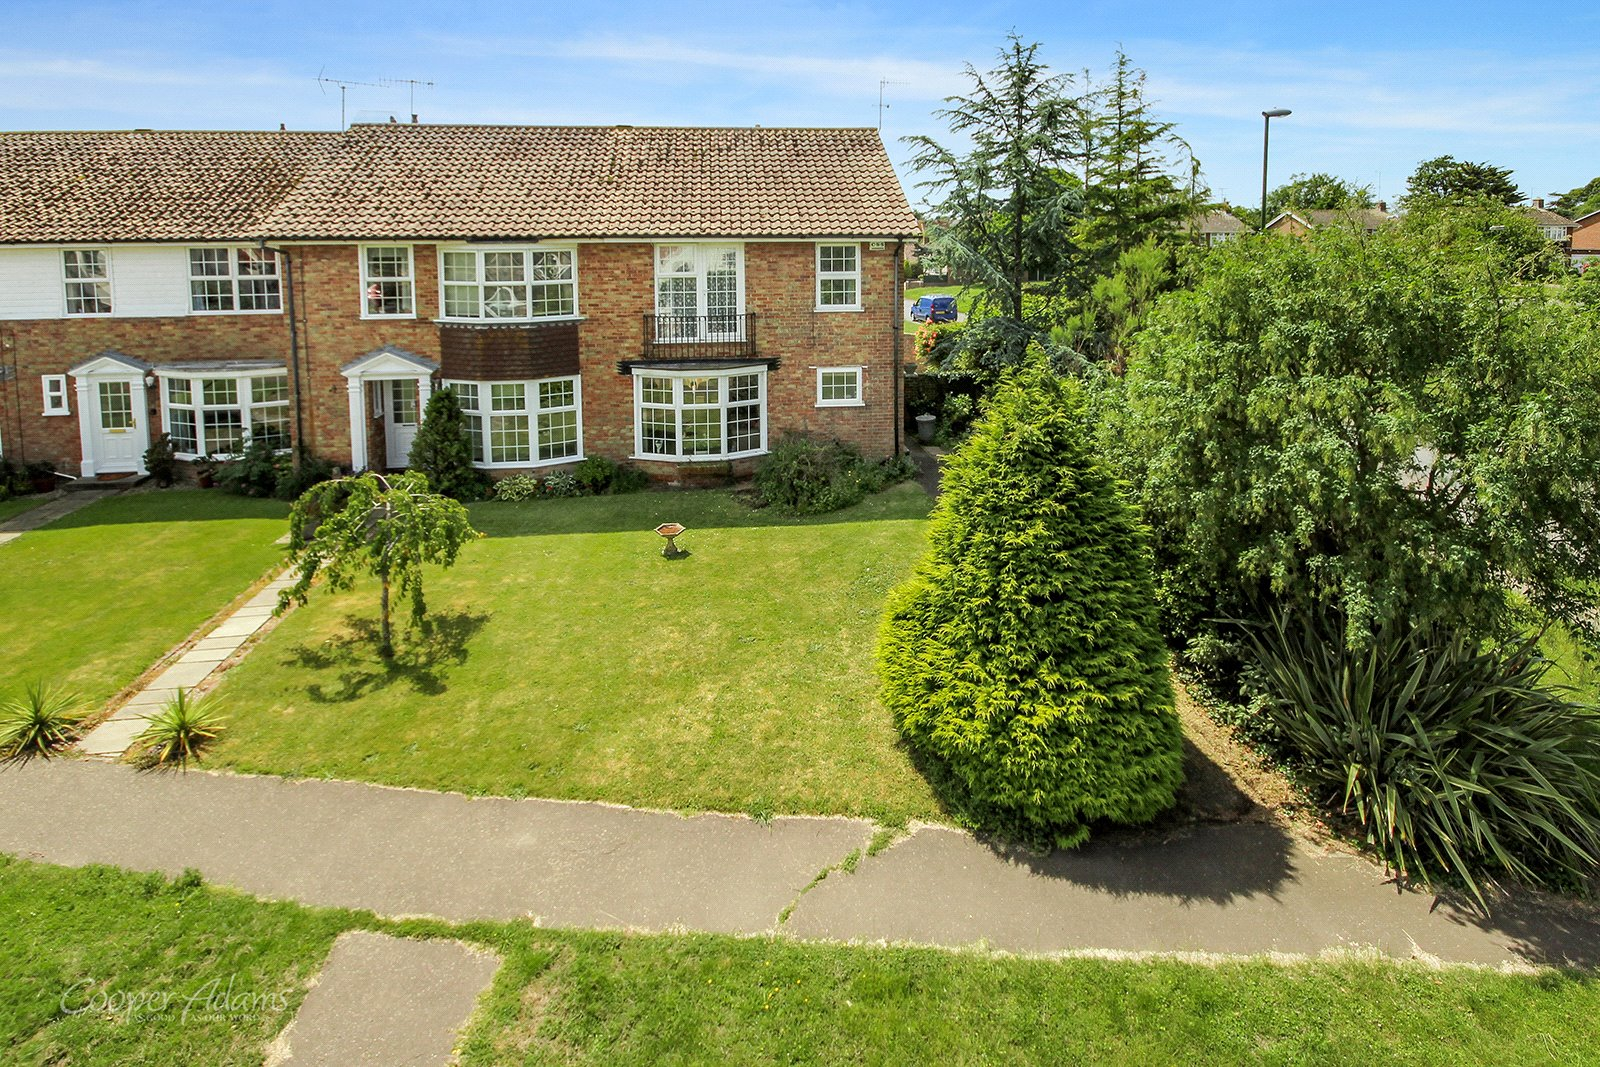 3 bed house for sale in Limetree Close, East Preston, BN16